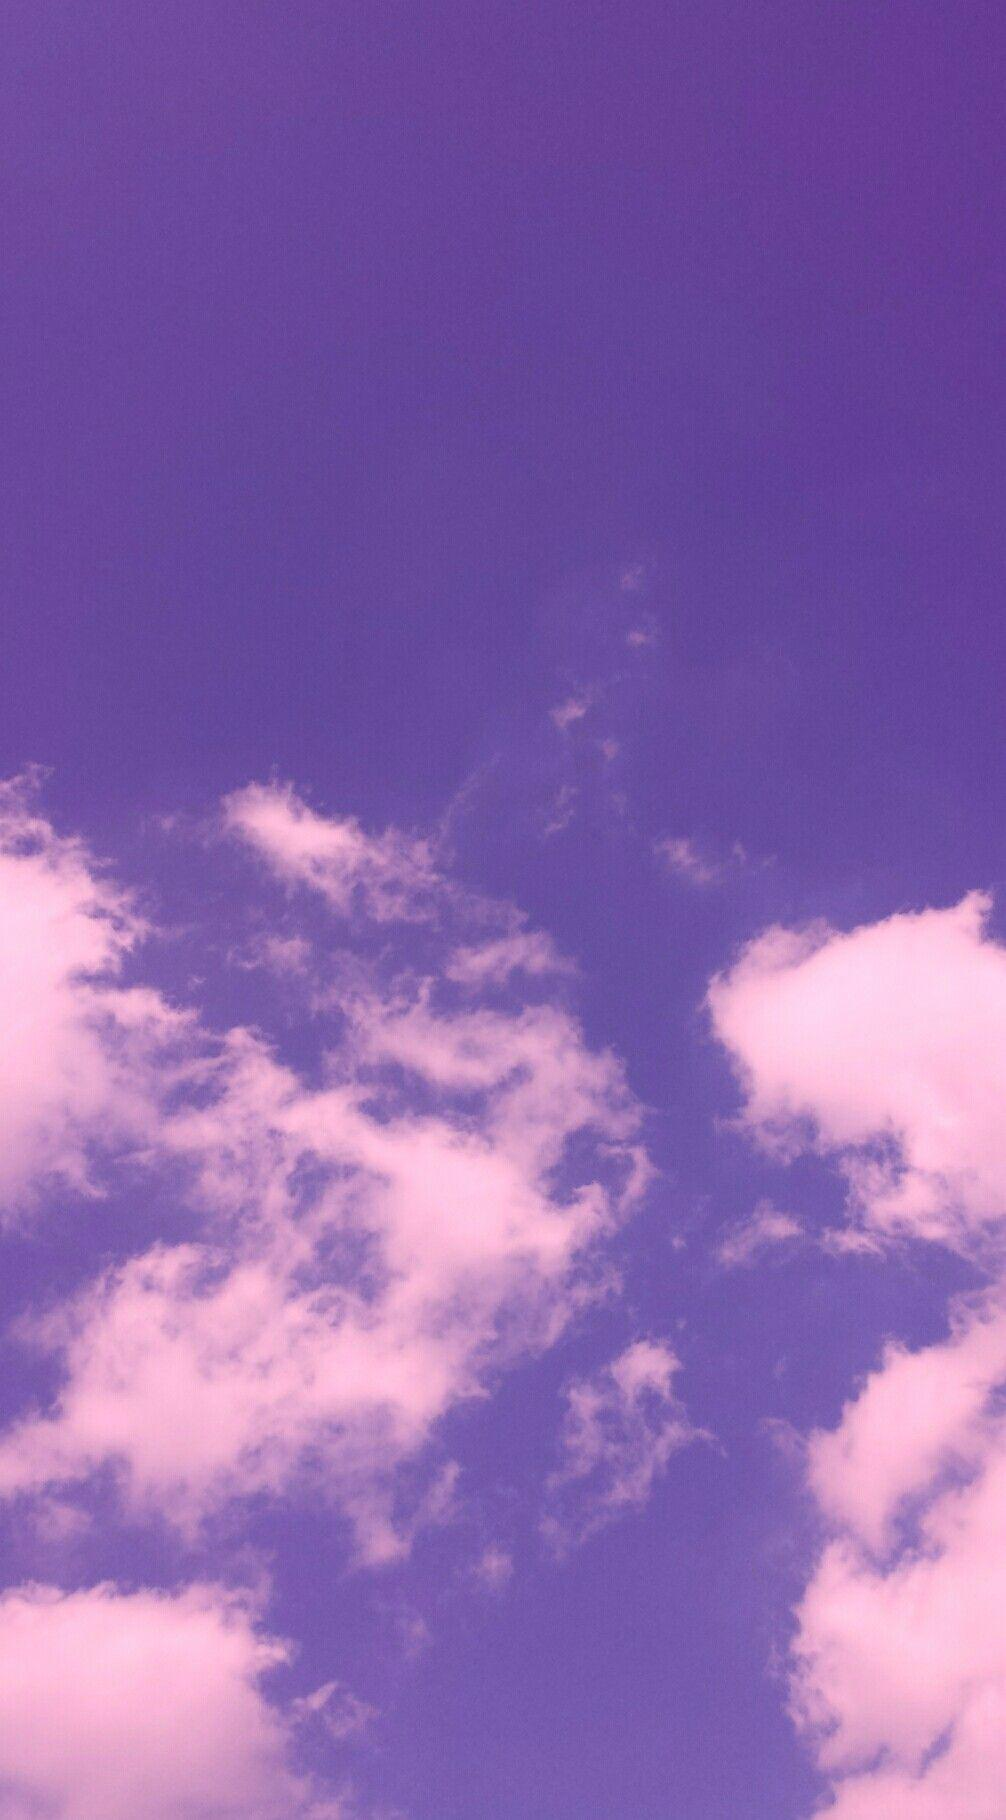 Aesthetic Purple Clouds Wallpapers Wallpaper Cave